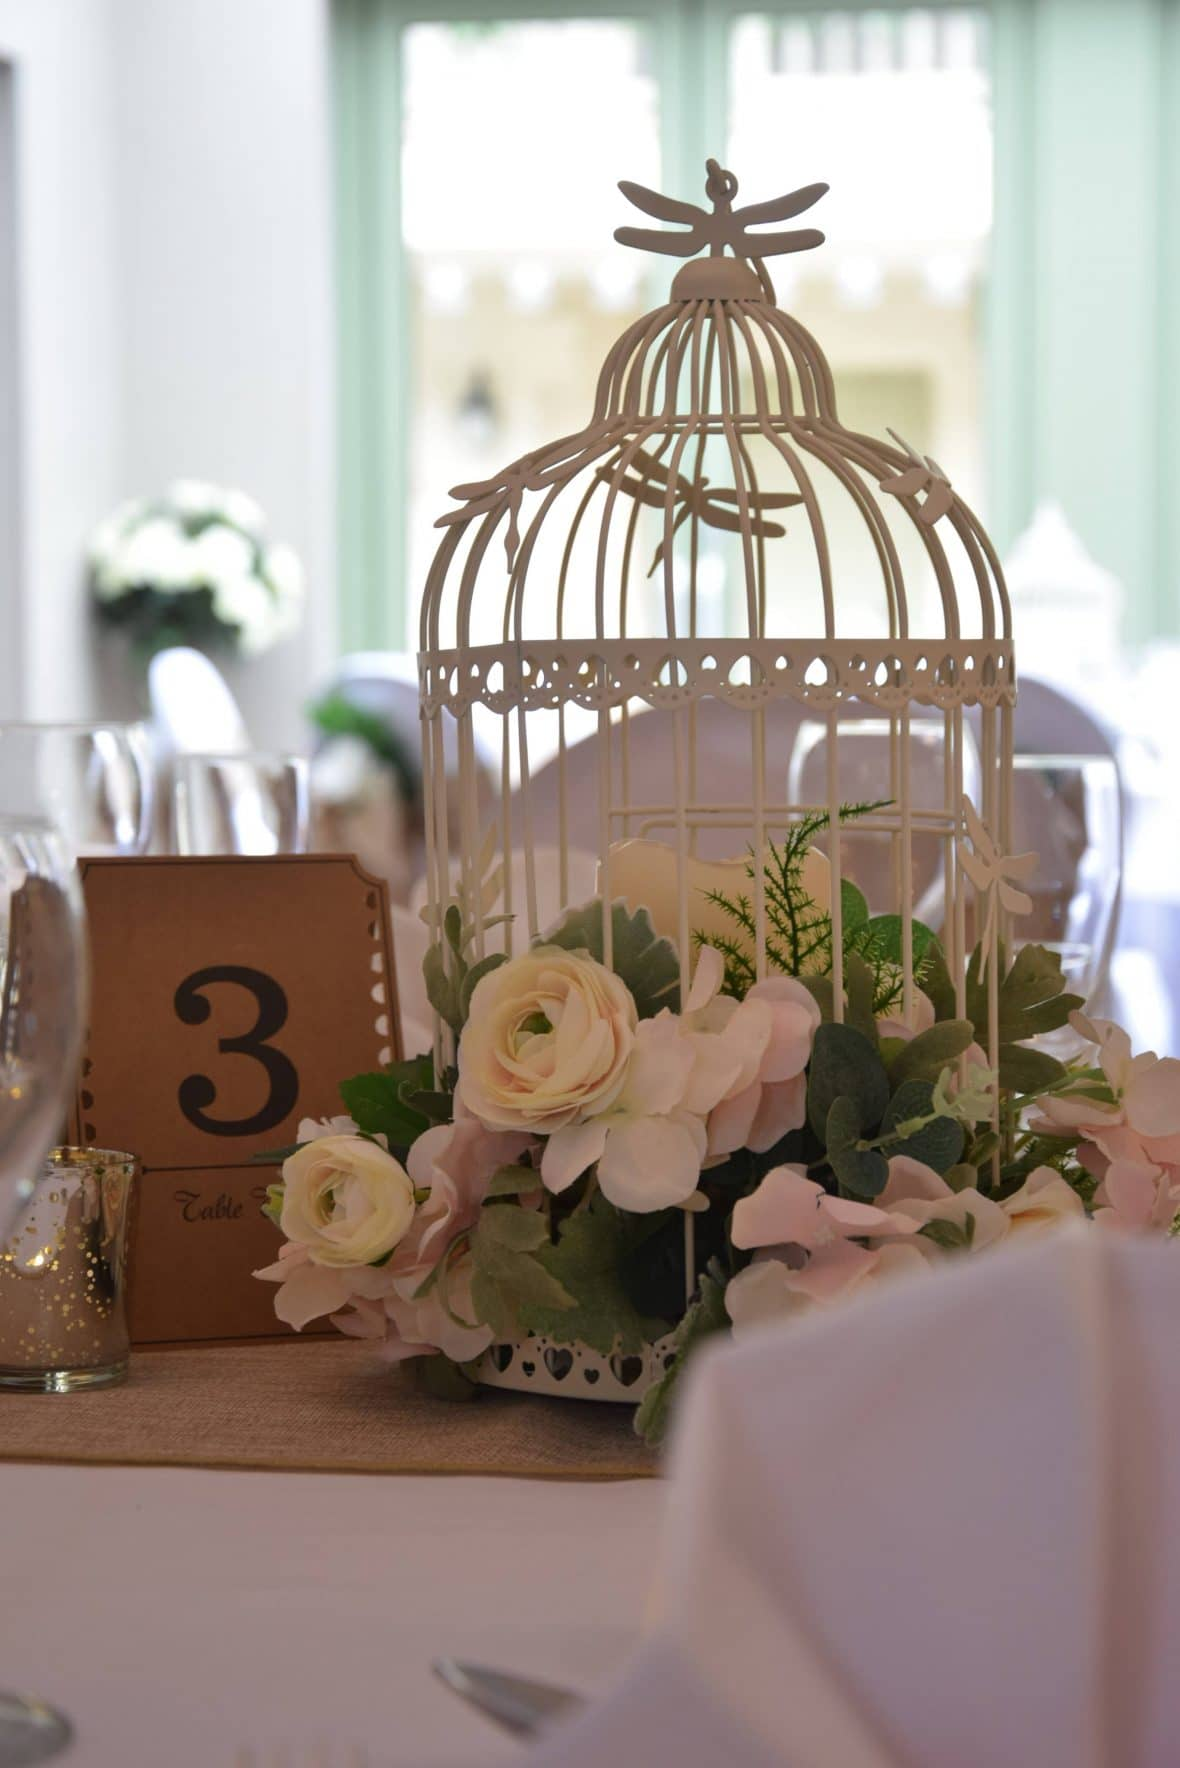 Centrepiece of a birdcage filled with flowers perfect for a rustic themed venue decor